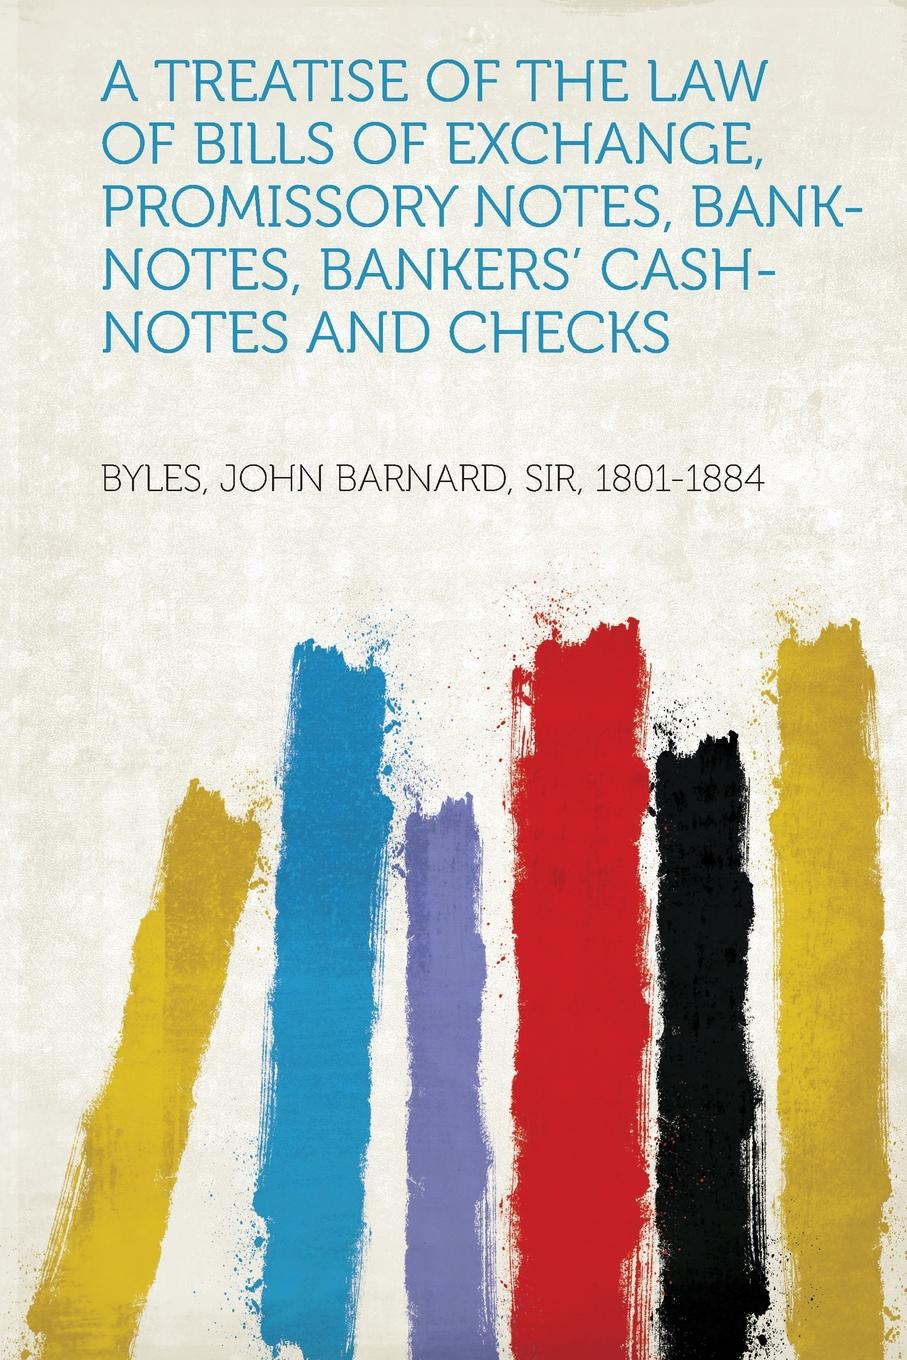 John Barnard Byles A Treatise of the Law of Bills of Exchange, Promissory Notes, Bank-Notes, Bankers. Cash-Notes and Checks энди дериз the bad bankers andi deris and the bad bankers million dollar haircuts on ten cent heads 2 cd